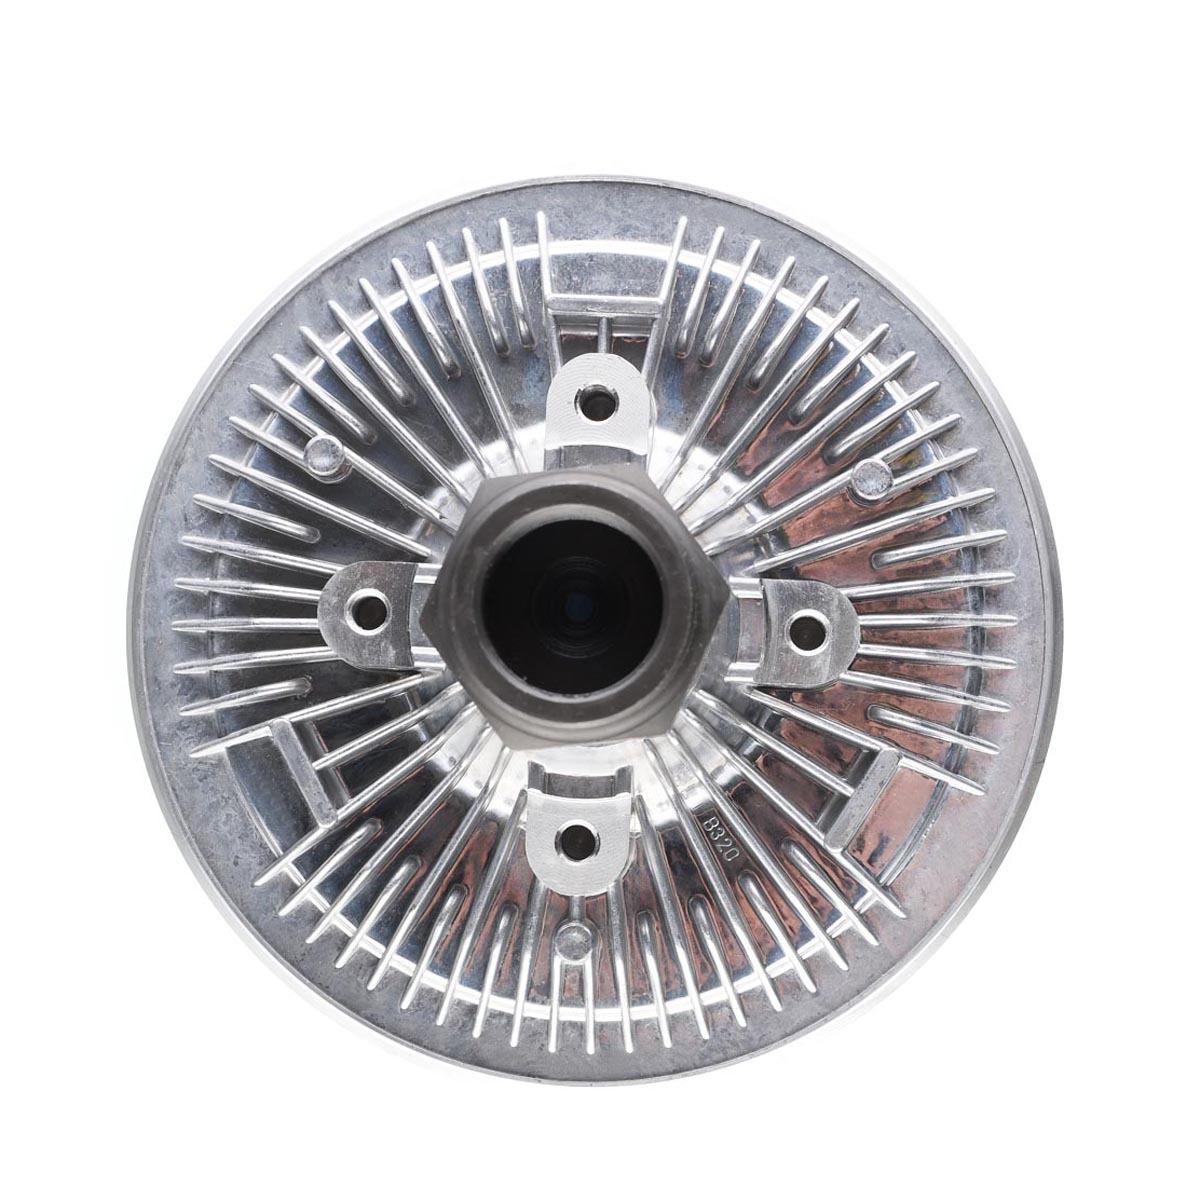 hight resolution of cooling fan clutch for ford excursion f 250 f350 f750 super duty 7 3l turbo diesel 1999 2003 2837 22611 f81z8a616 da f81z8a616da in fans kits from